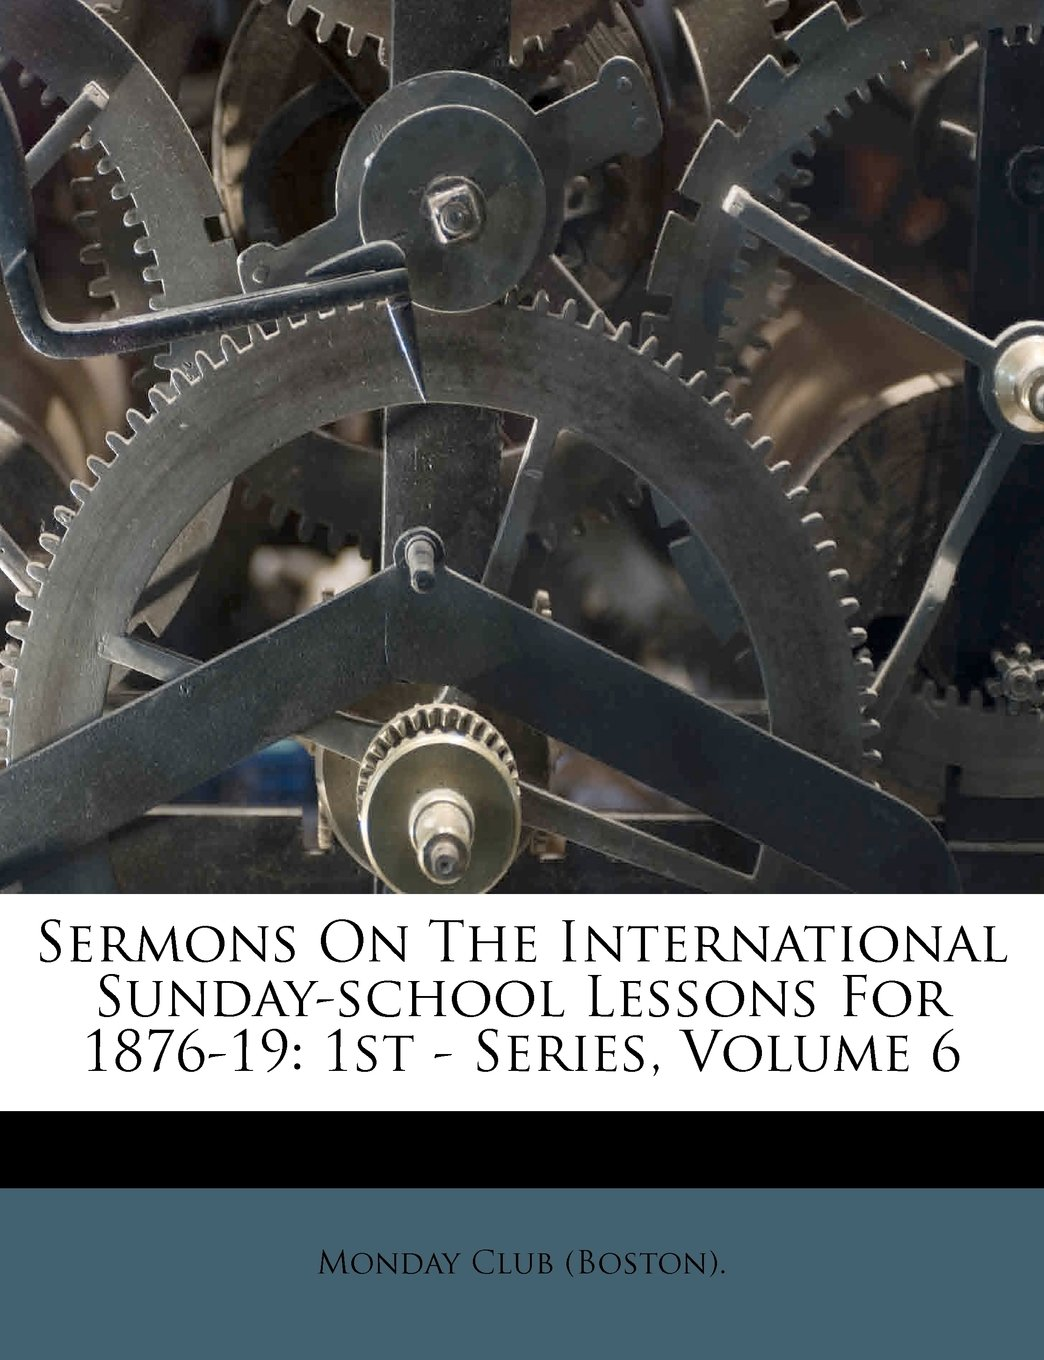 Download Sermons On The International Sunday-school Lessons For 1876-19: 1st - Series, Volume 6 PDF